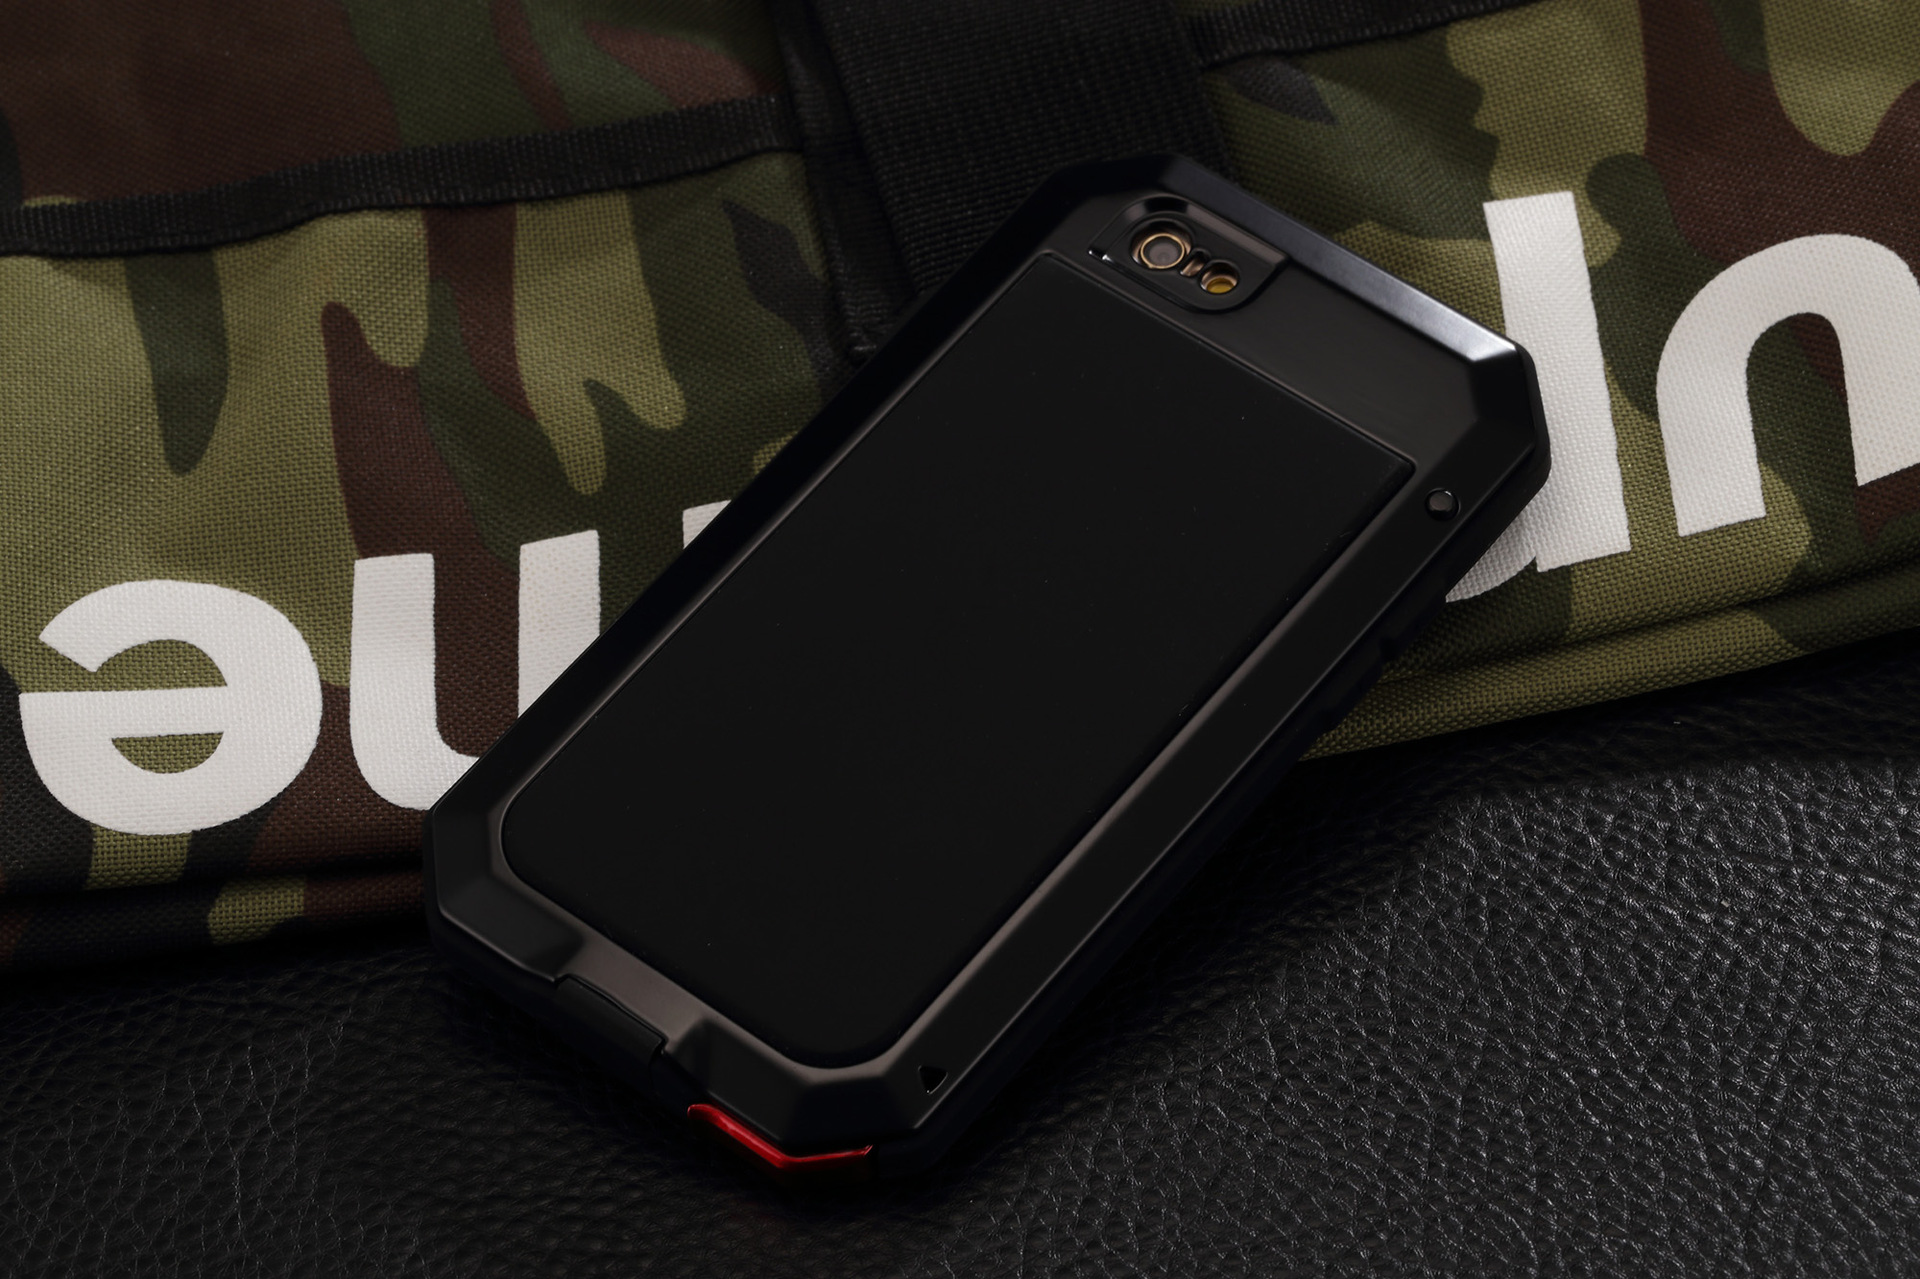 R-Just Extreme Premium Protection System Aluminum Heavy Duty Metal Case with Corning Gorilla Glass for Apple iPhone 6S Plus/6 Plus & iPhone 6S/6